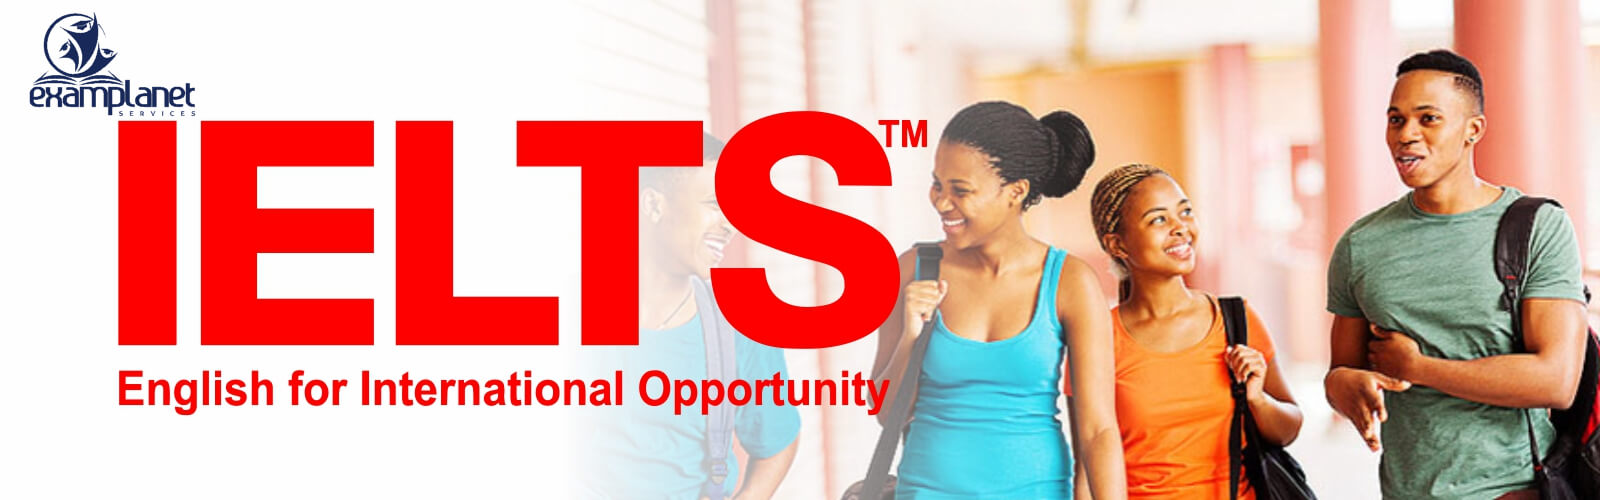 IELTS EXAMINATION - TEST, REGISTRATION AND TRAINING CENTERS